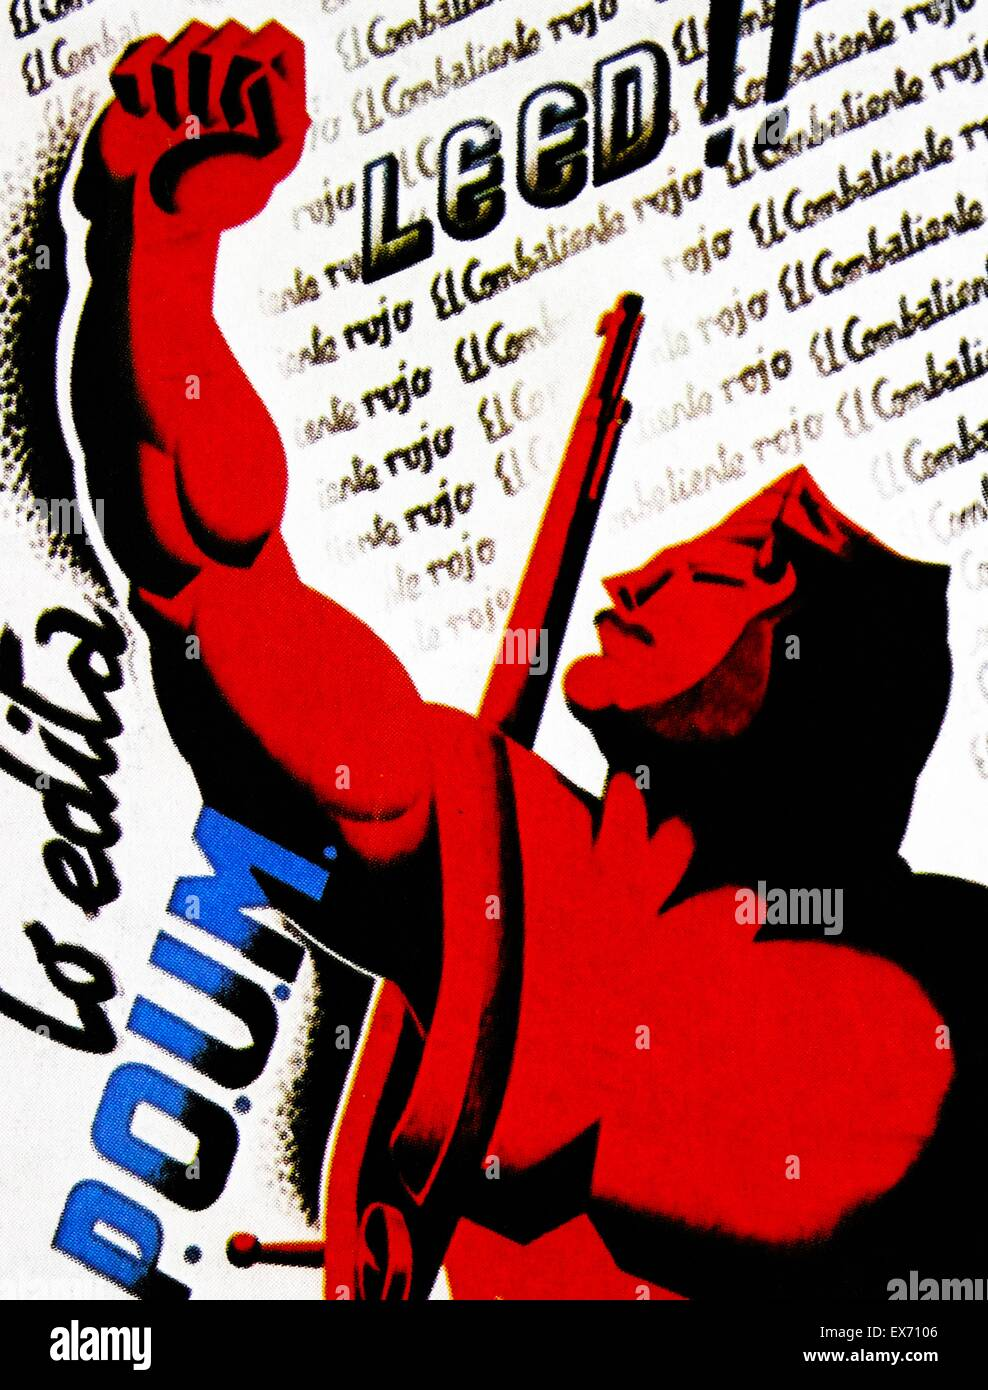 Image result for spanish civil war marxist salute